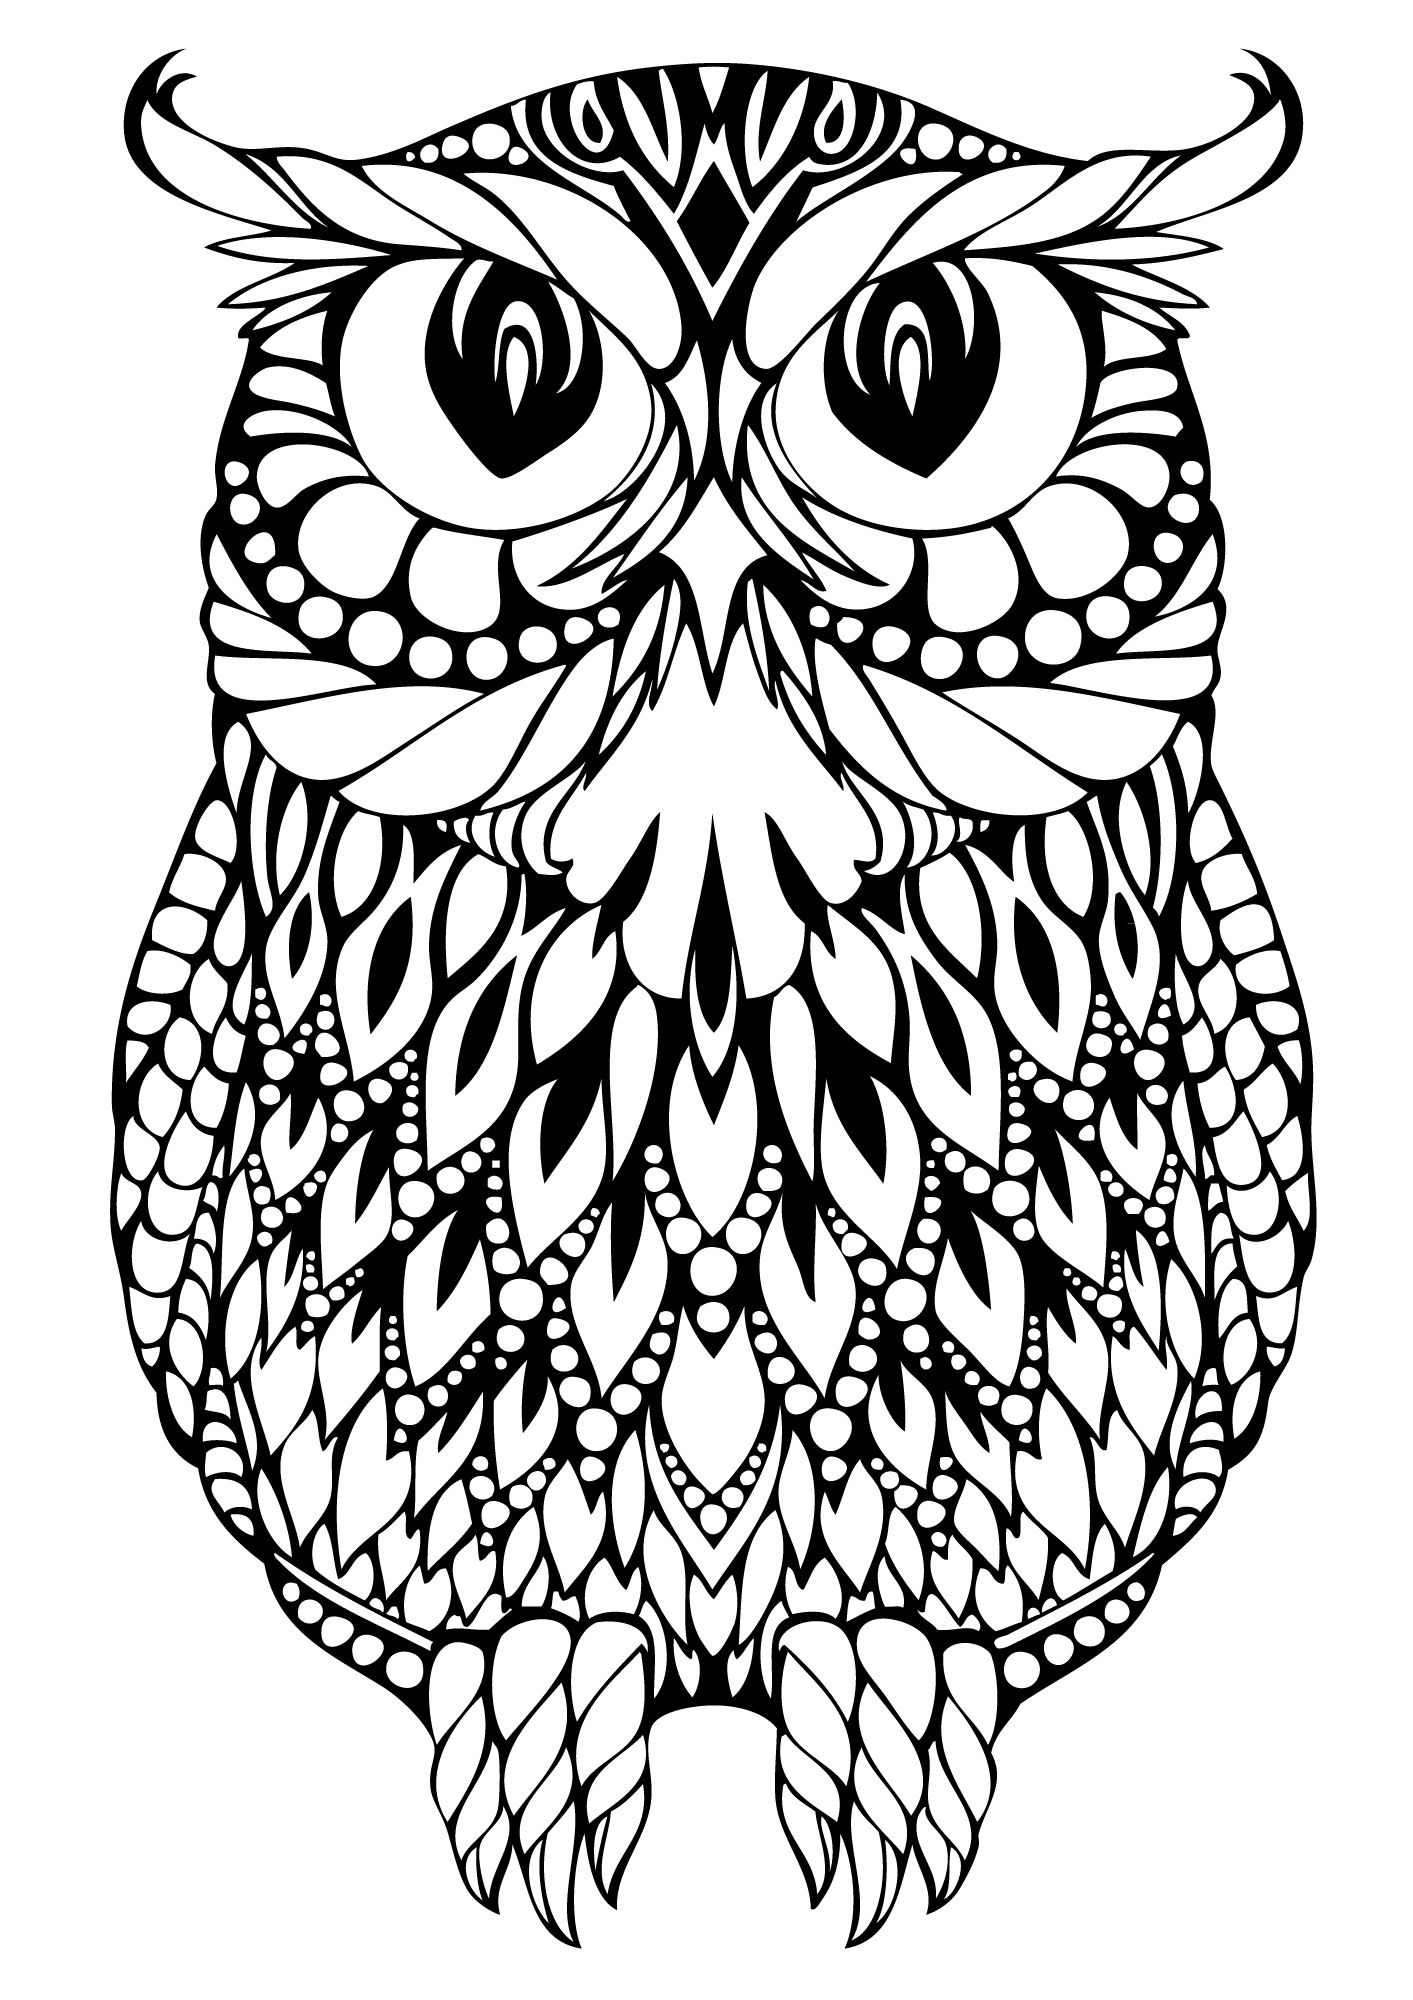 Colouring sheets hard - Hard Owl Coloring Pages